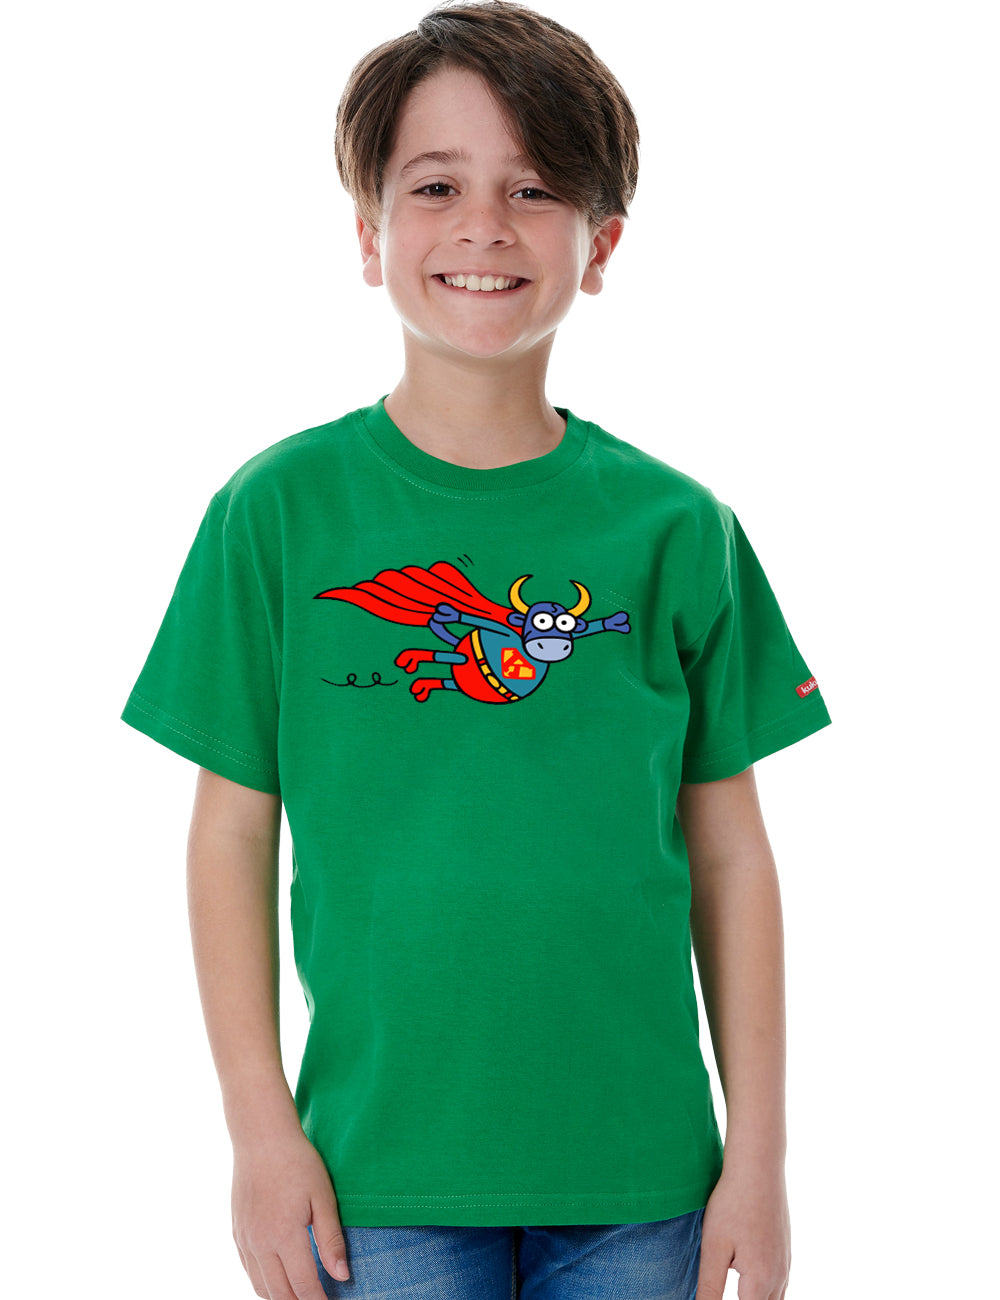 Super Toro Boys T-Shirt